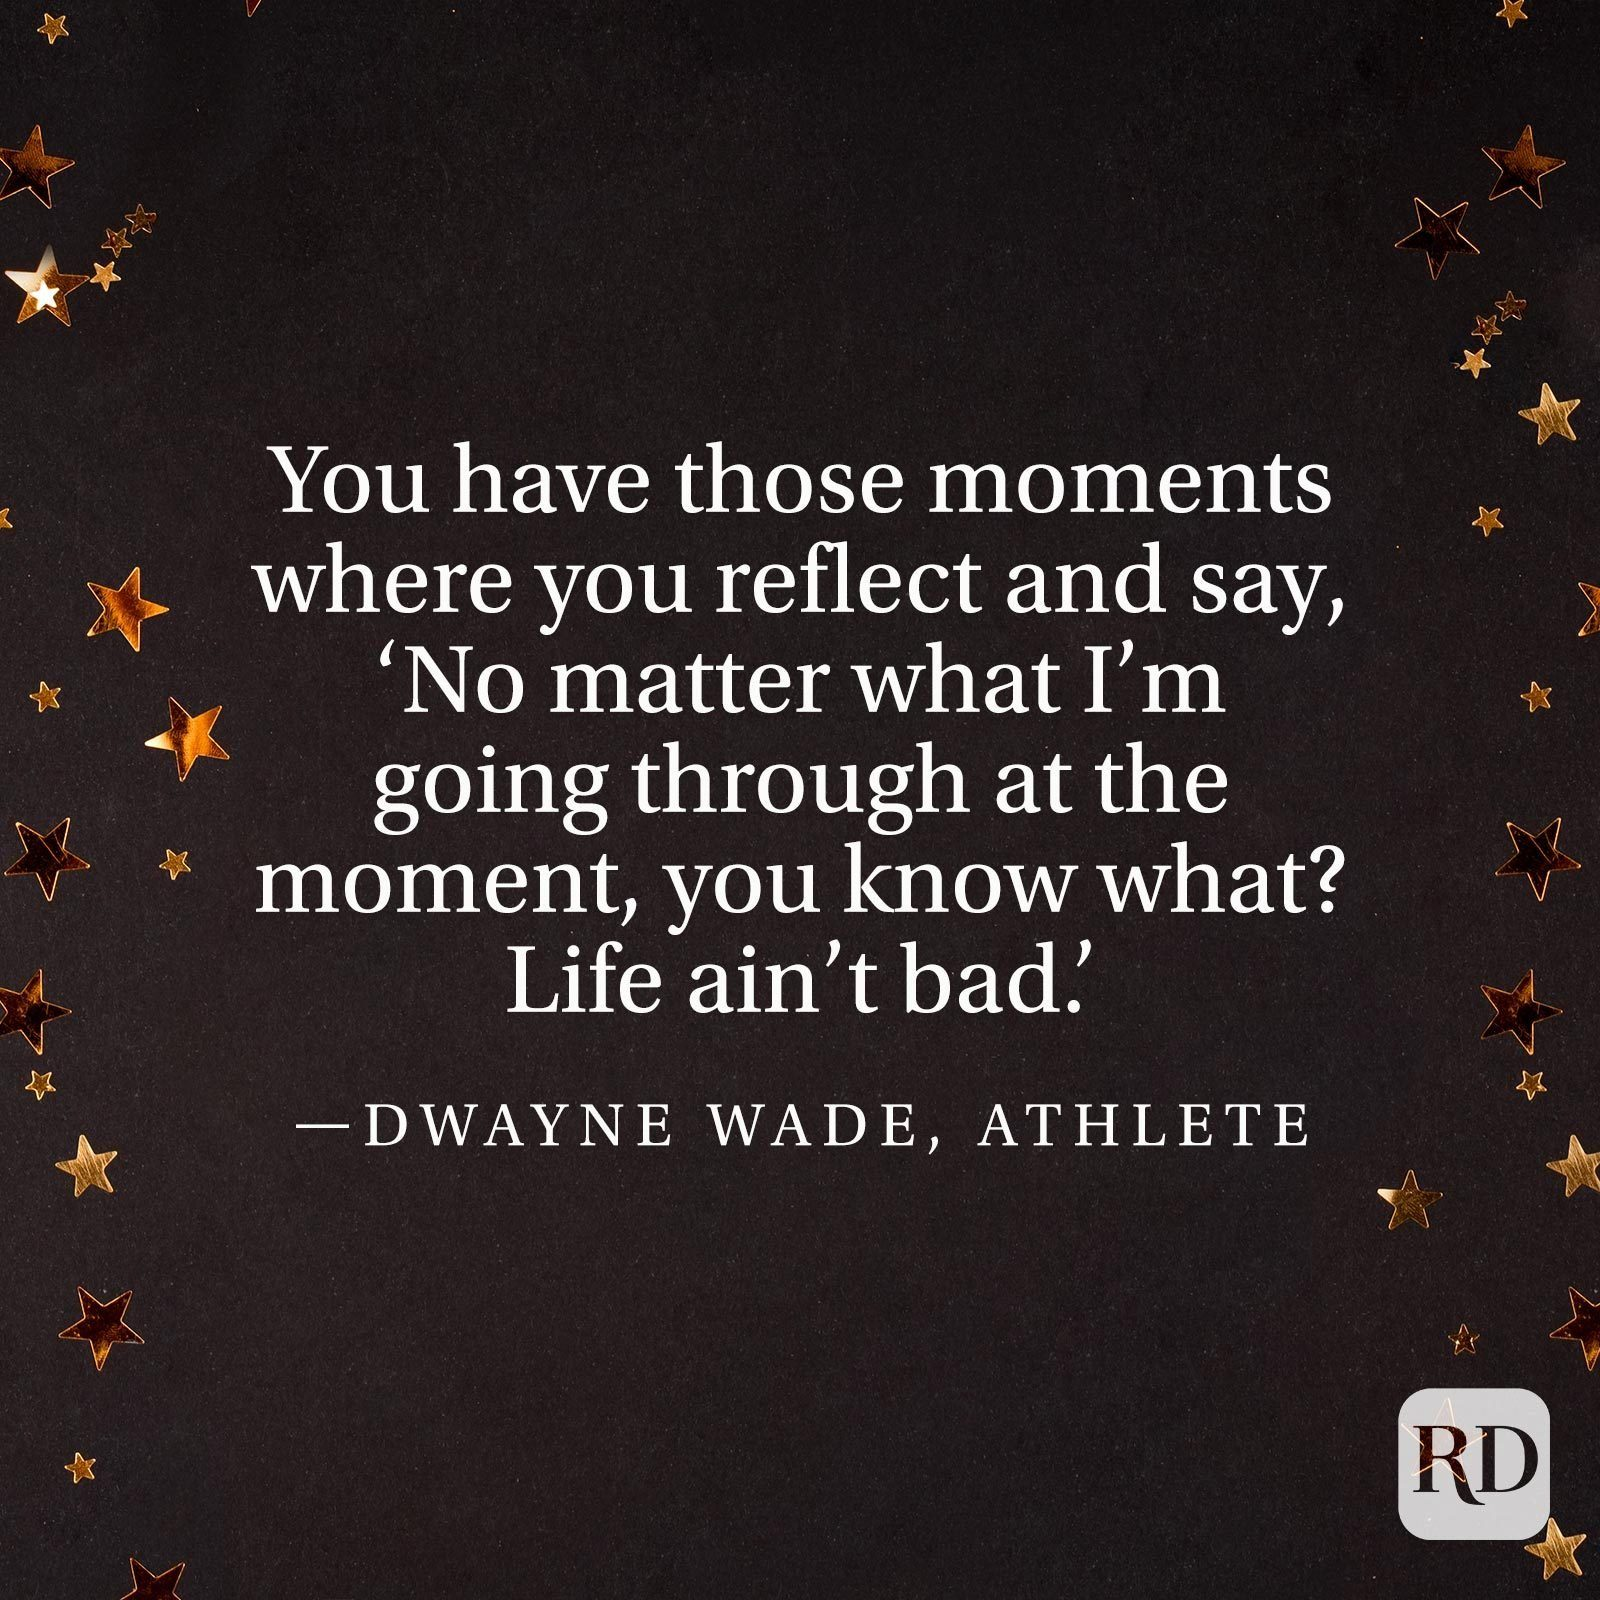 """You have those moments where you reflect and say, 'No matter what I'm going through at the moment, you know what? Life ain't bad.'"" —Dwayne Wade, athlete"